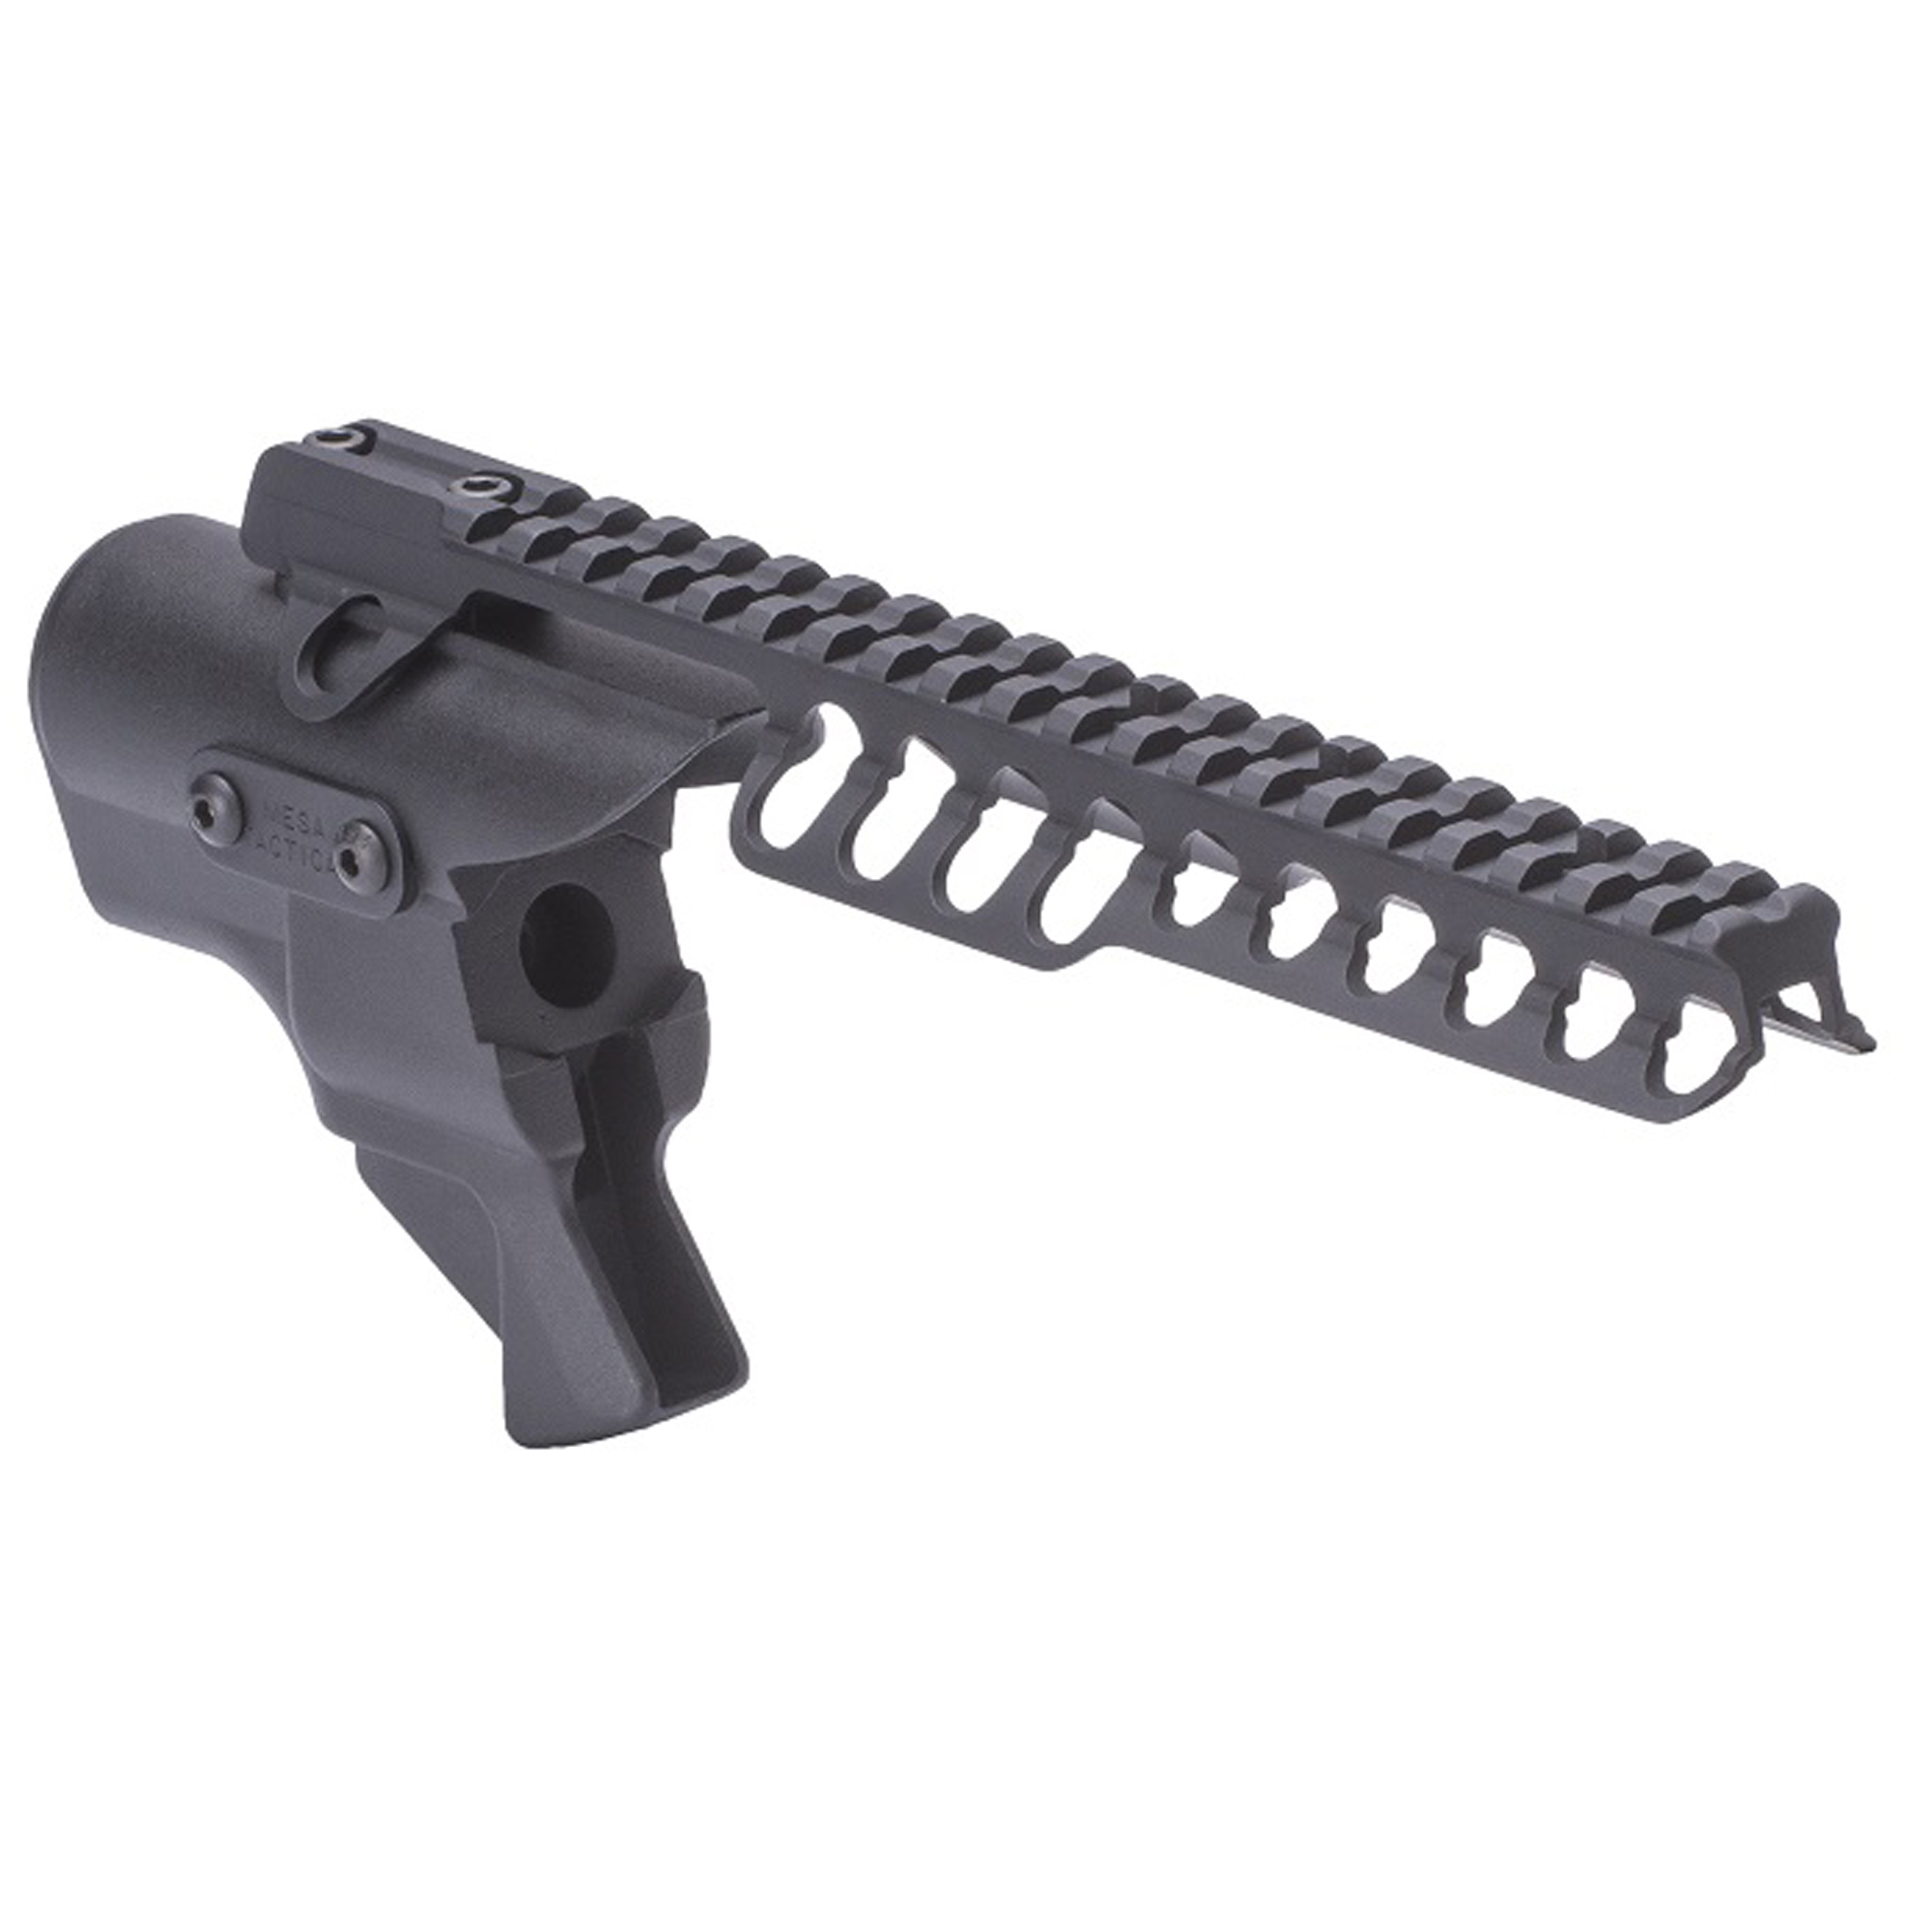 High-tube adapters have a comb height equivalent to an AR-15 and require an optics rail (included). These specialized adapters are for certain law enforcement applications or competition. High tube adapters allow proper cheek weld and eye alignment with popular optics such as an ACOG or Leupold CQT and others.